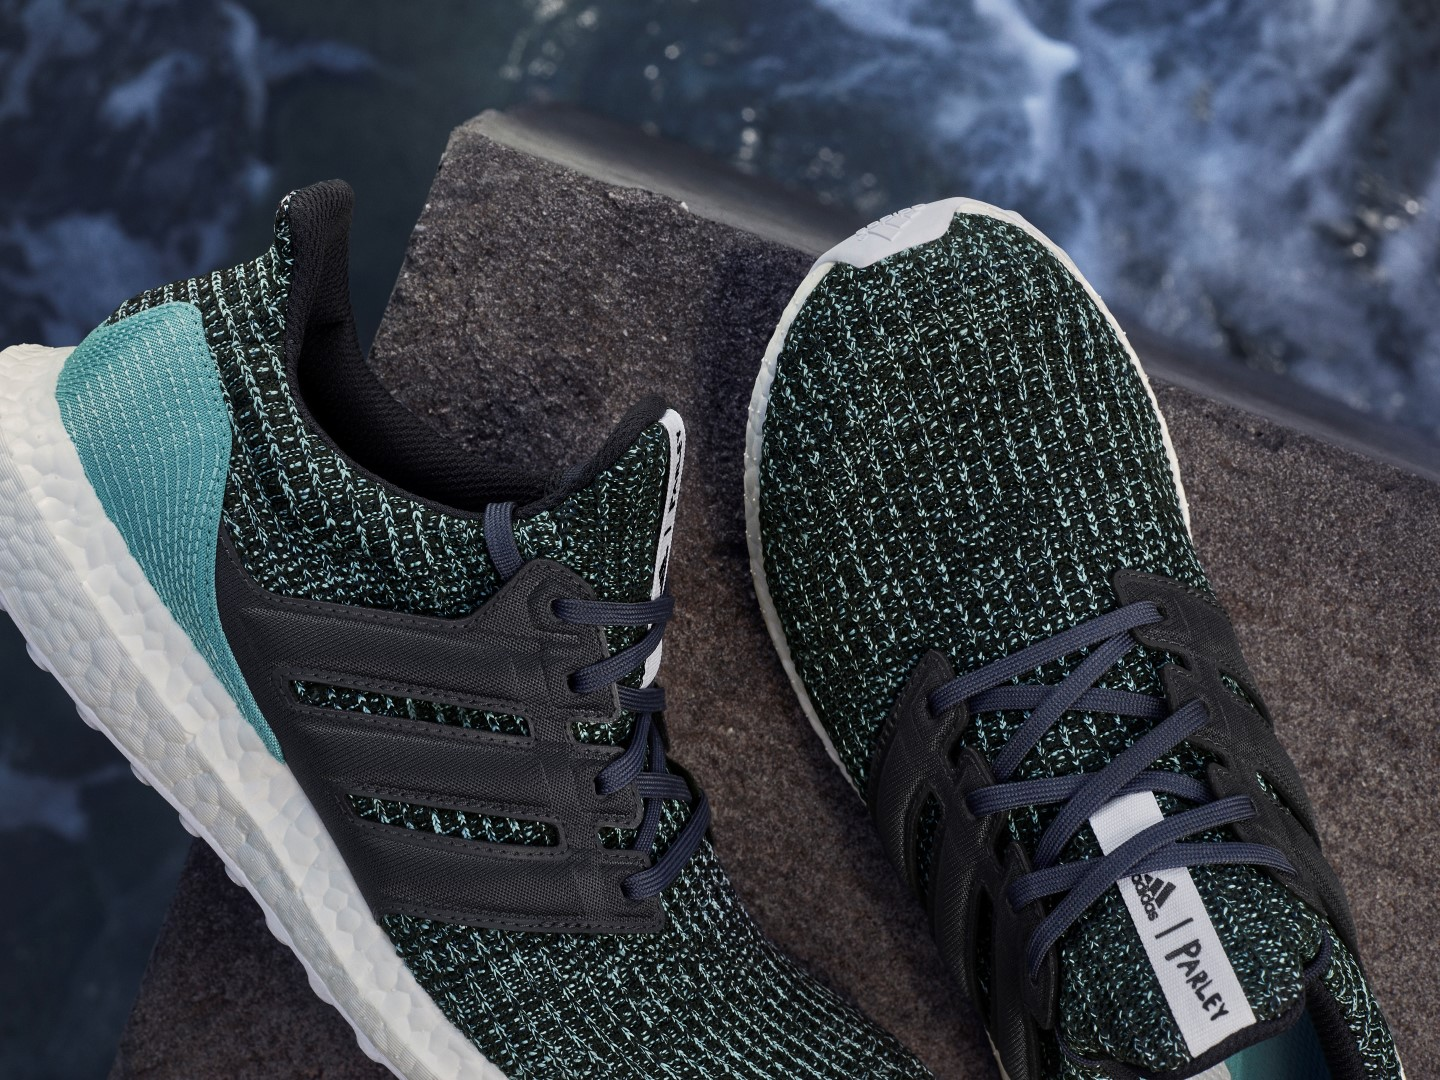 News: New Ultraboost Parley launched by Adidas, made from